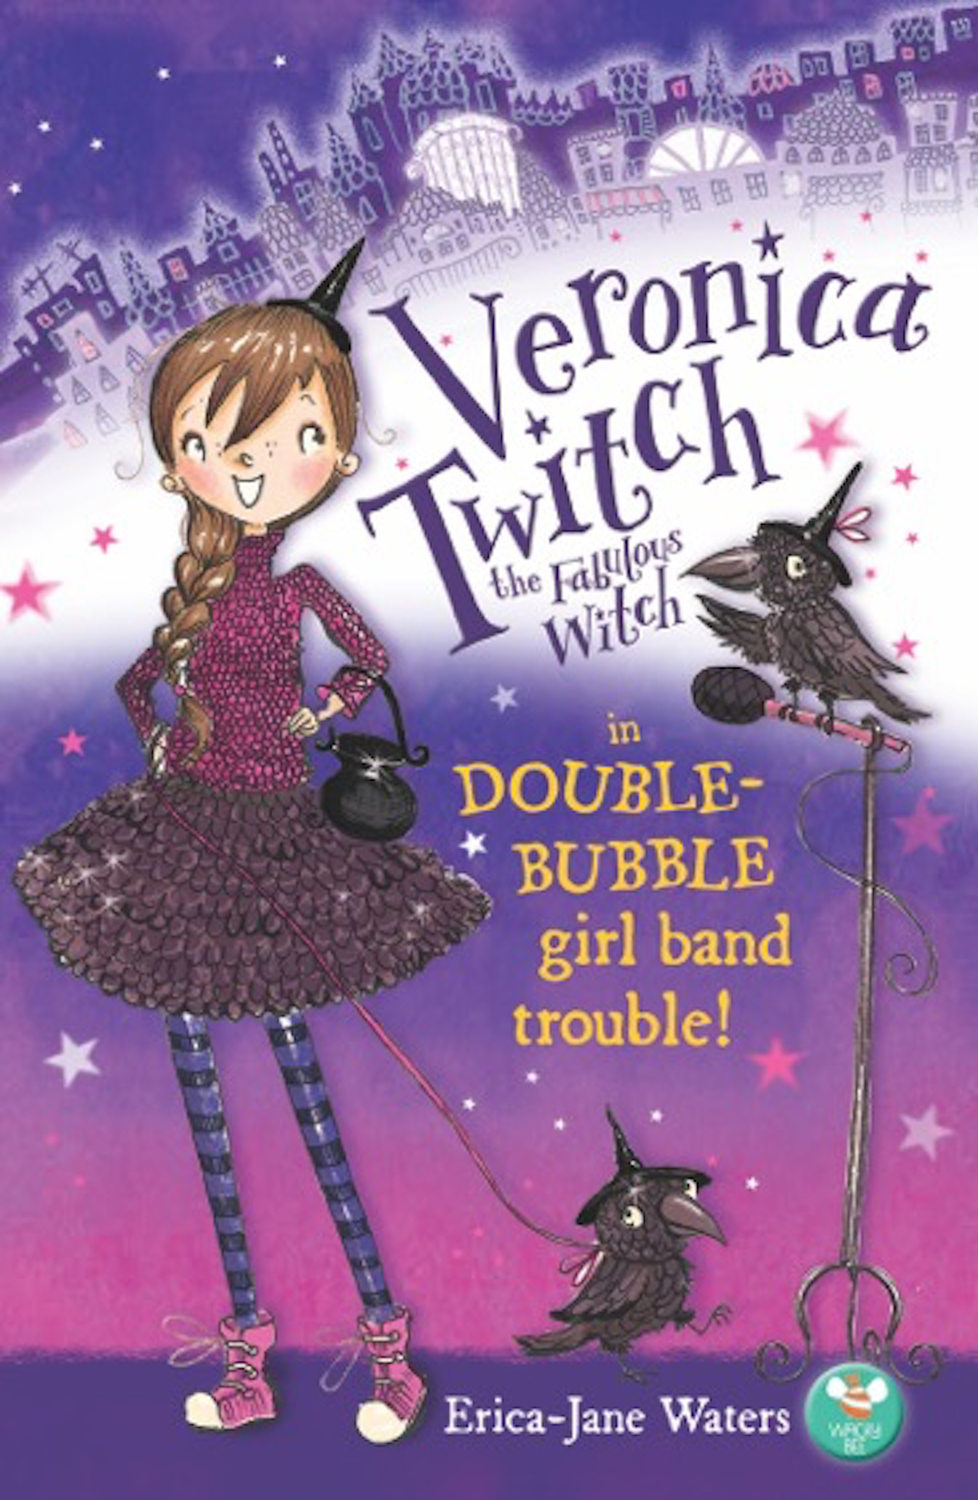 Veronica Twitch, the Fabulous Witch: Double-Bubble Girl-Band Trouble!